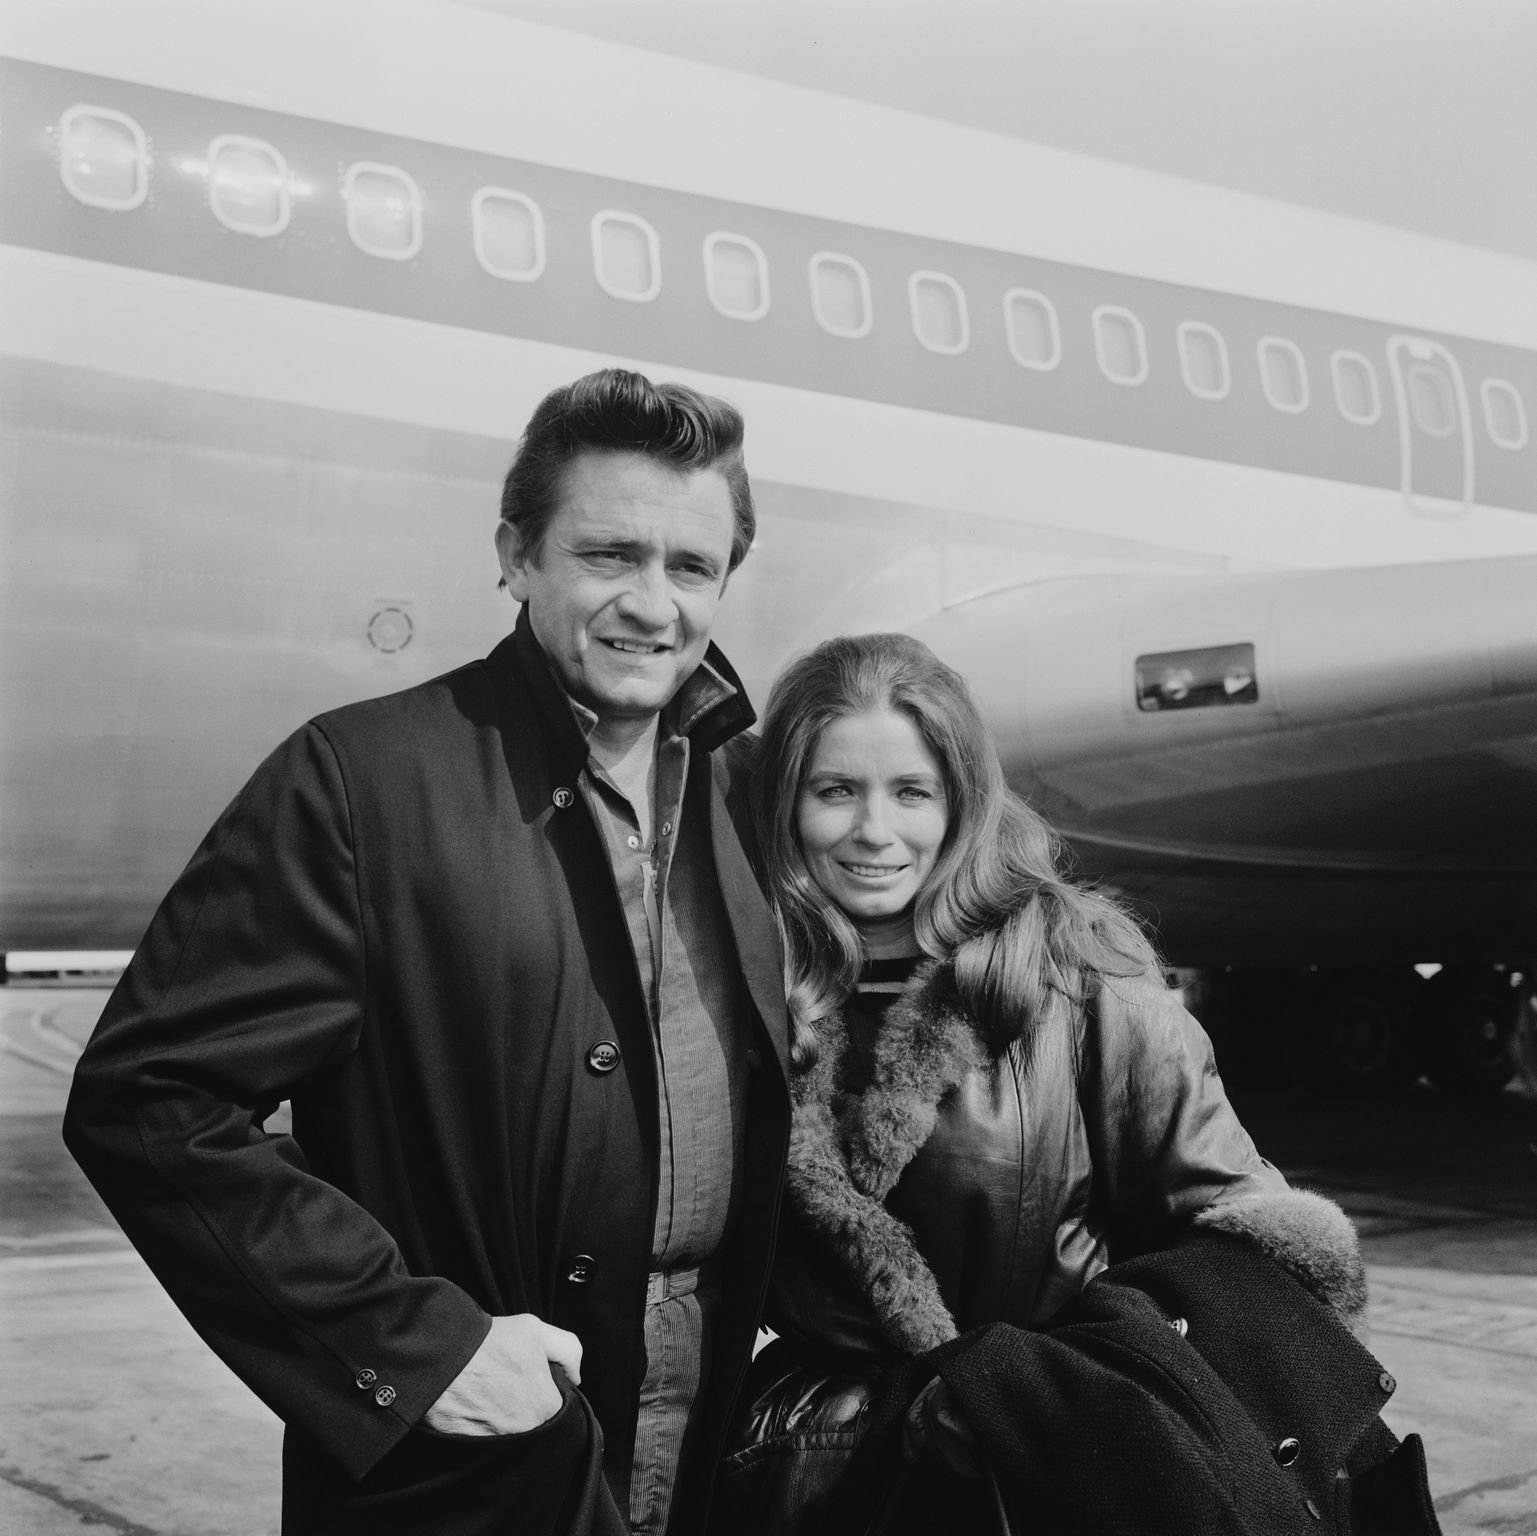 Johnny Cash with his wife, American singer and actress June Carter at Heathrow Airport, UK,1968 | Source: Getty Images